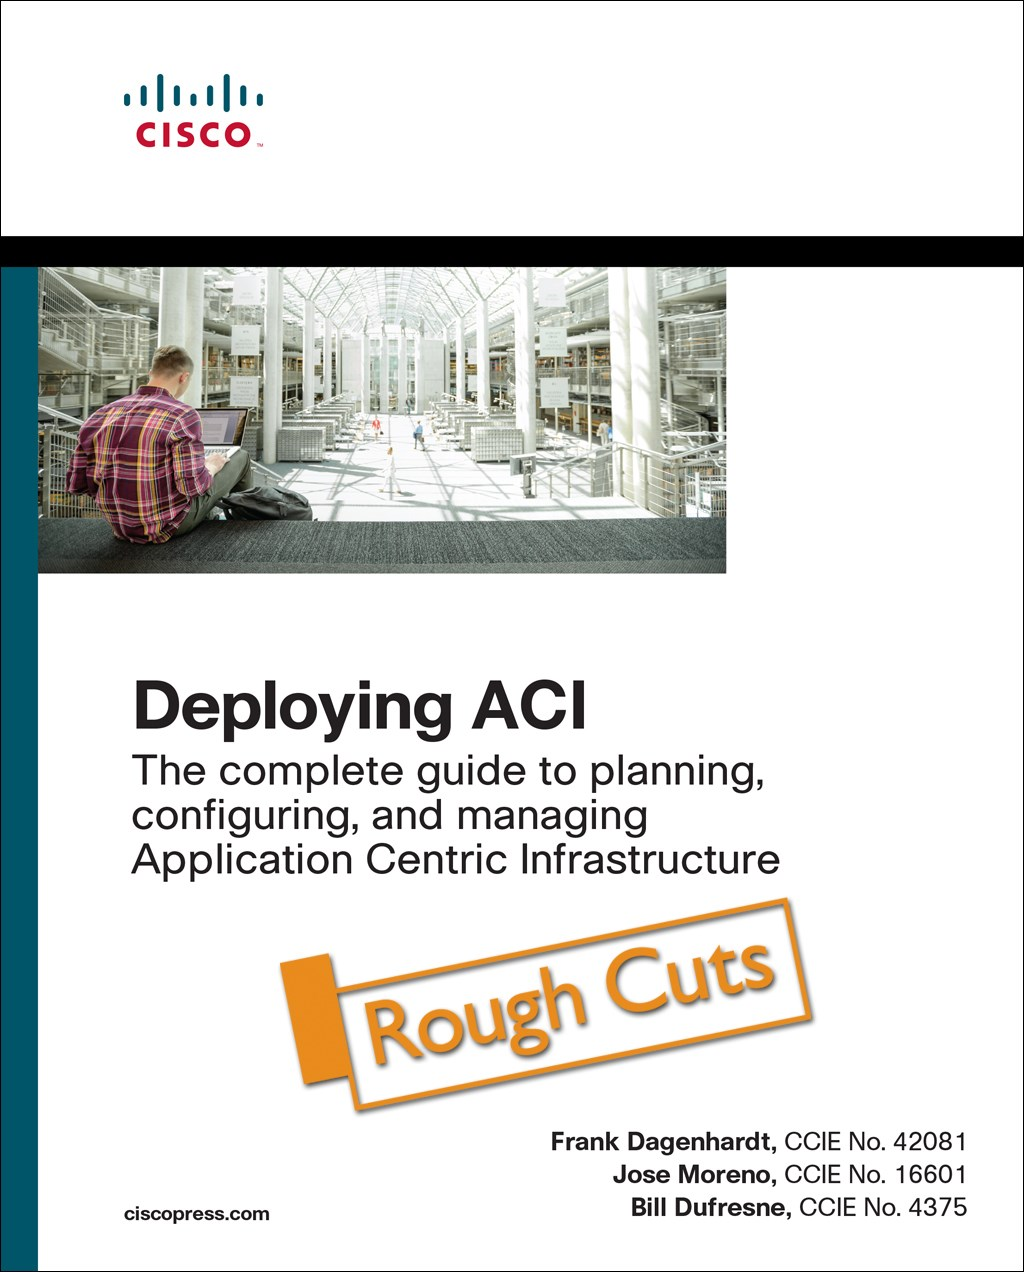 Deploying ACI: The complete guide to planning, configuring, and managing Application Centric Infrastructure, Rough Cuts